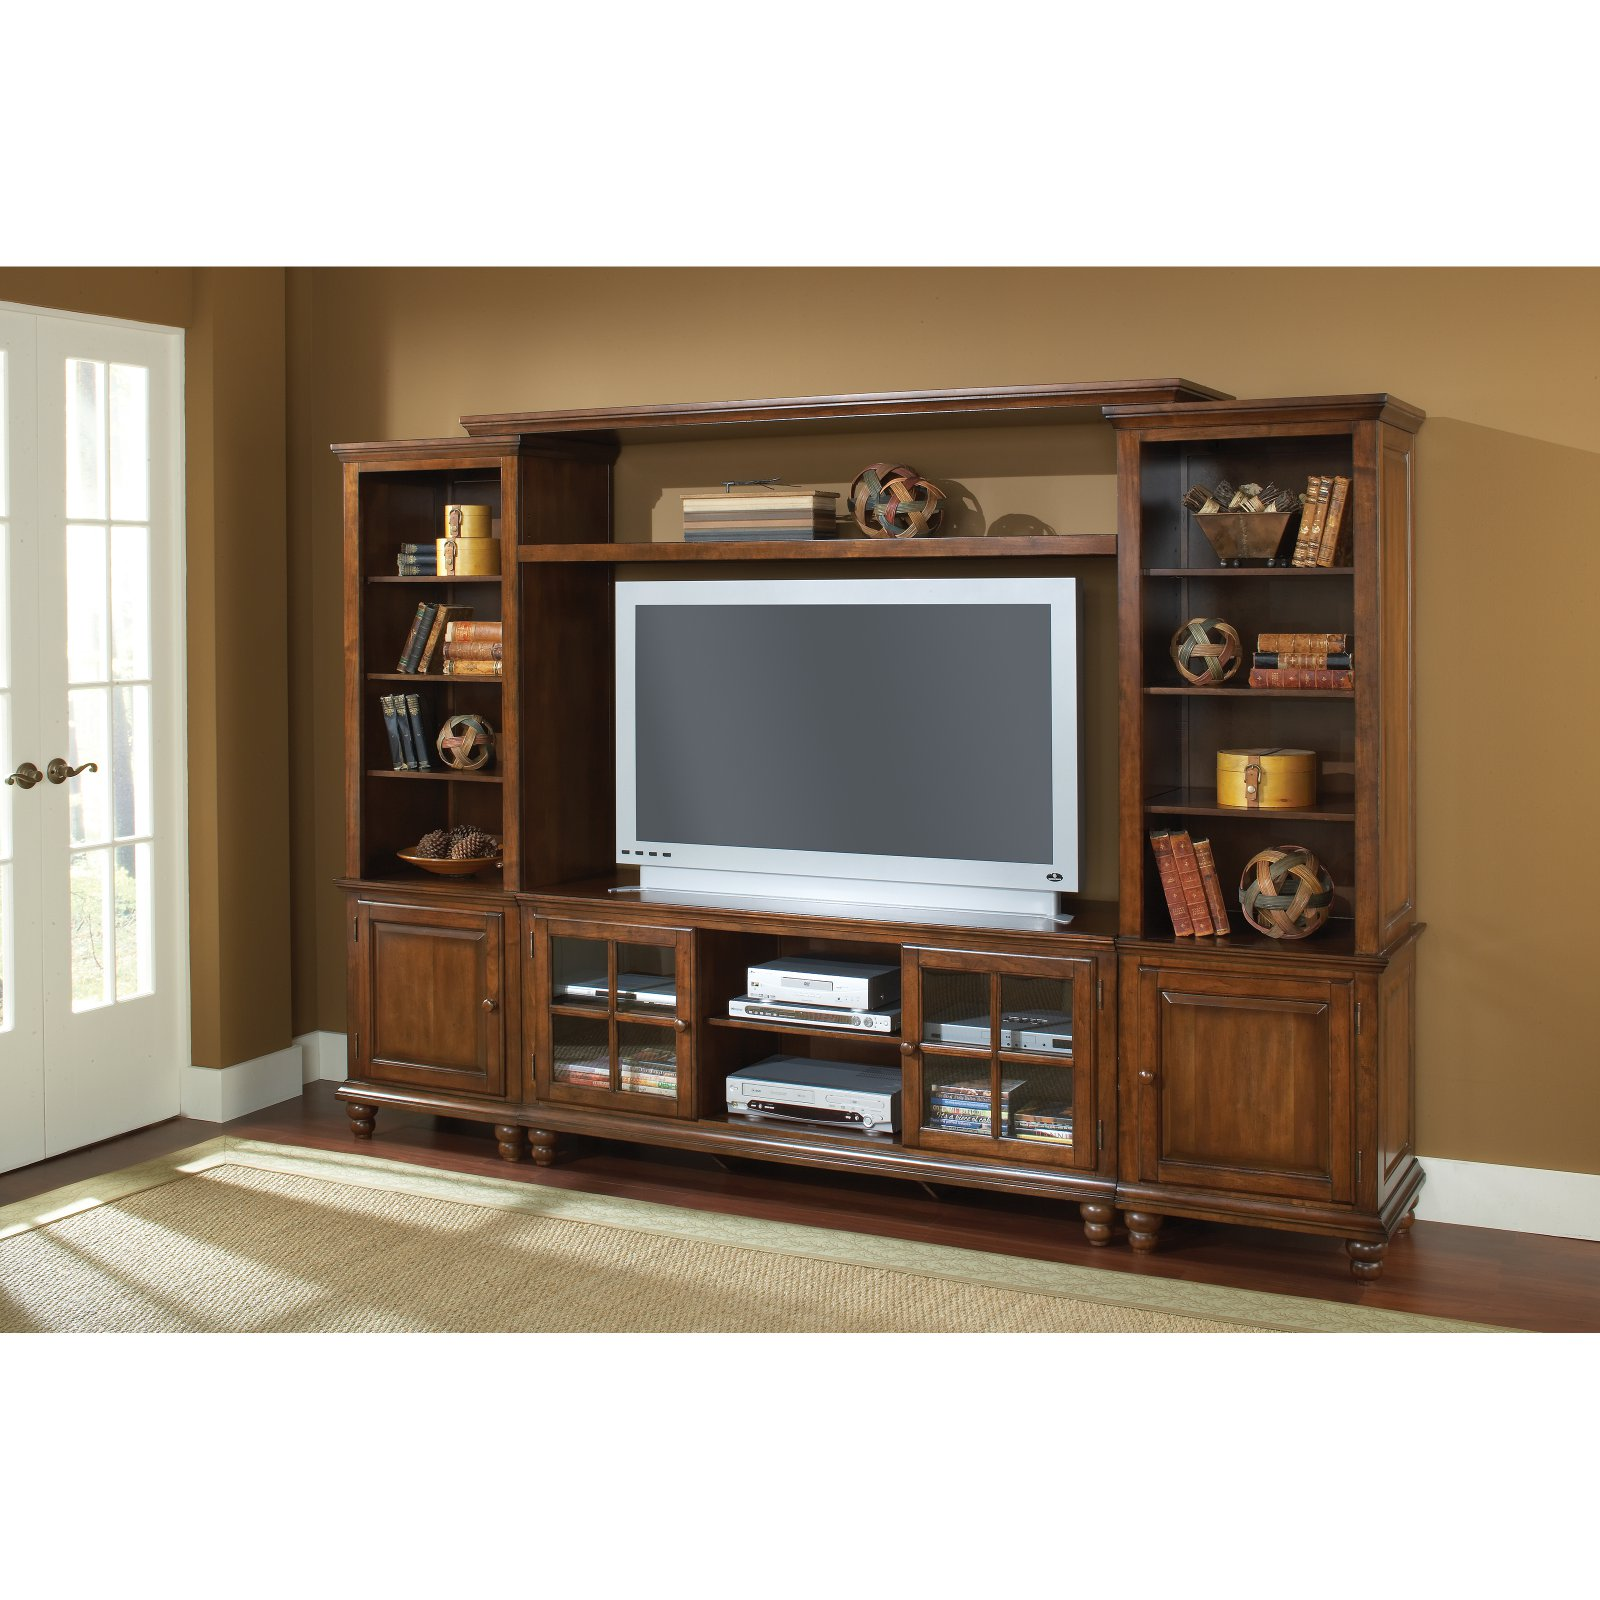 Hillsdale Grand Bay Entertainment Center by Hillsdale